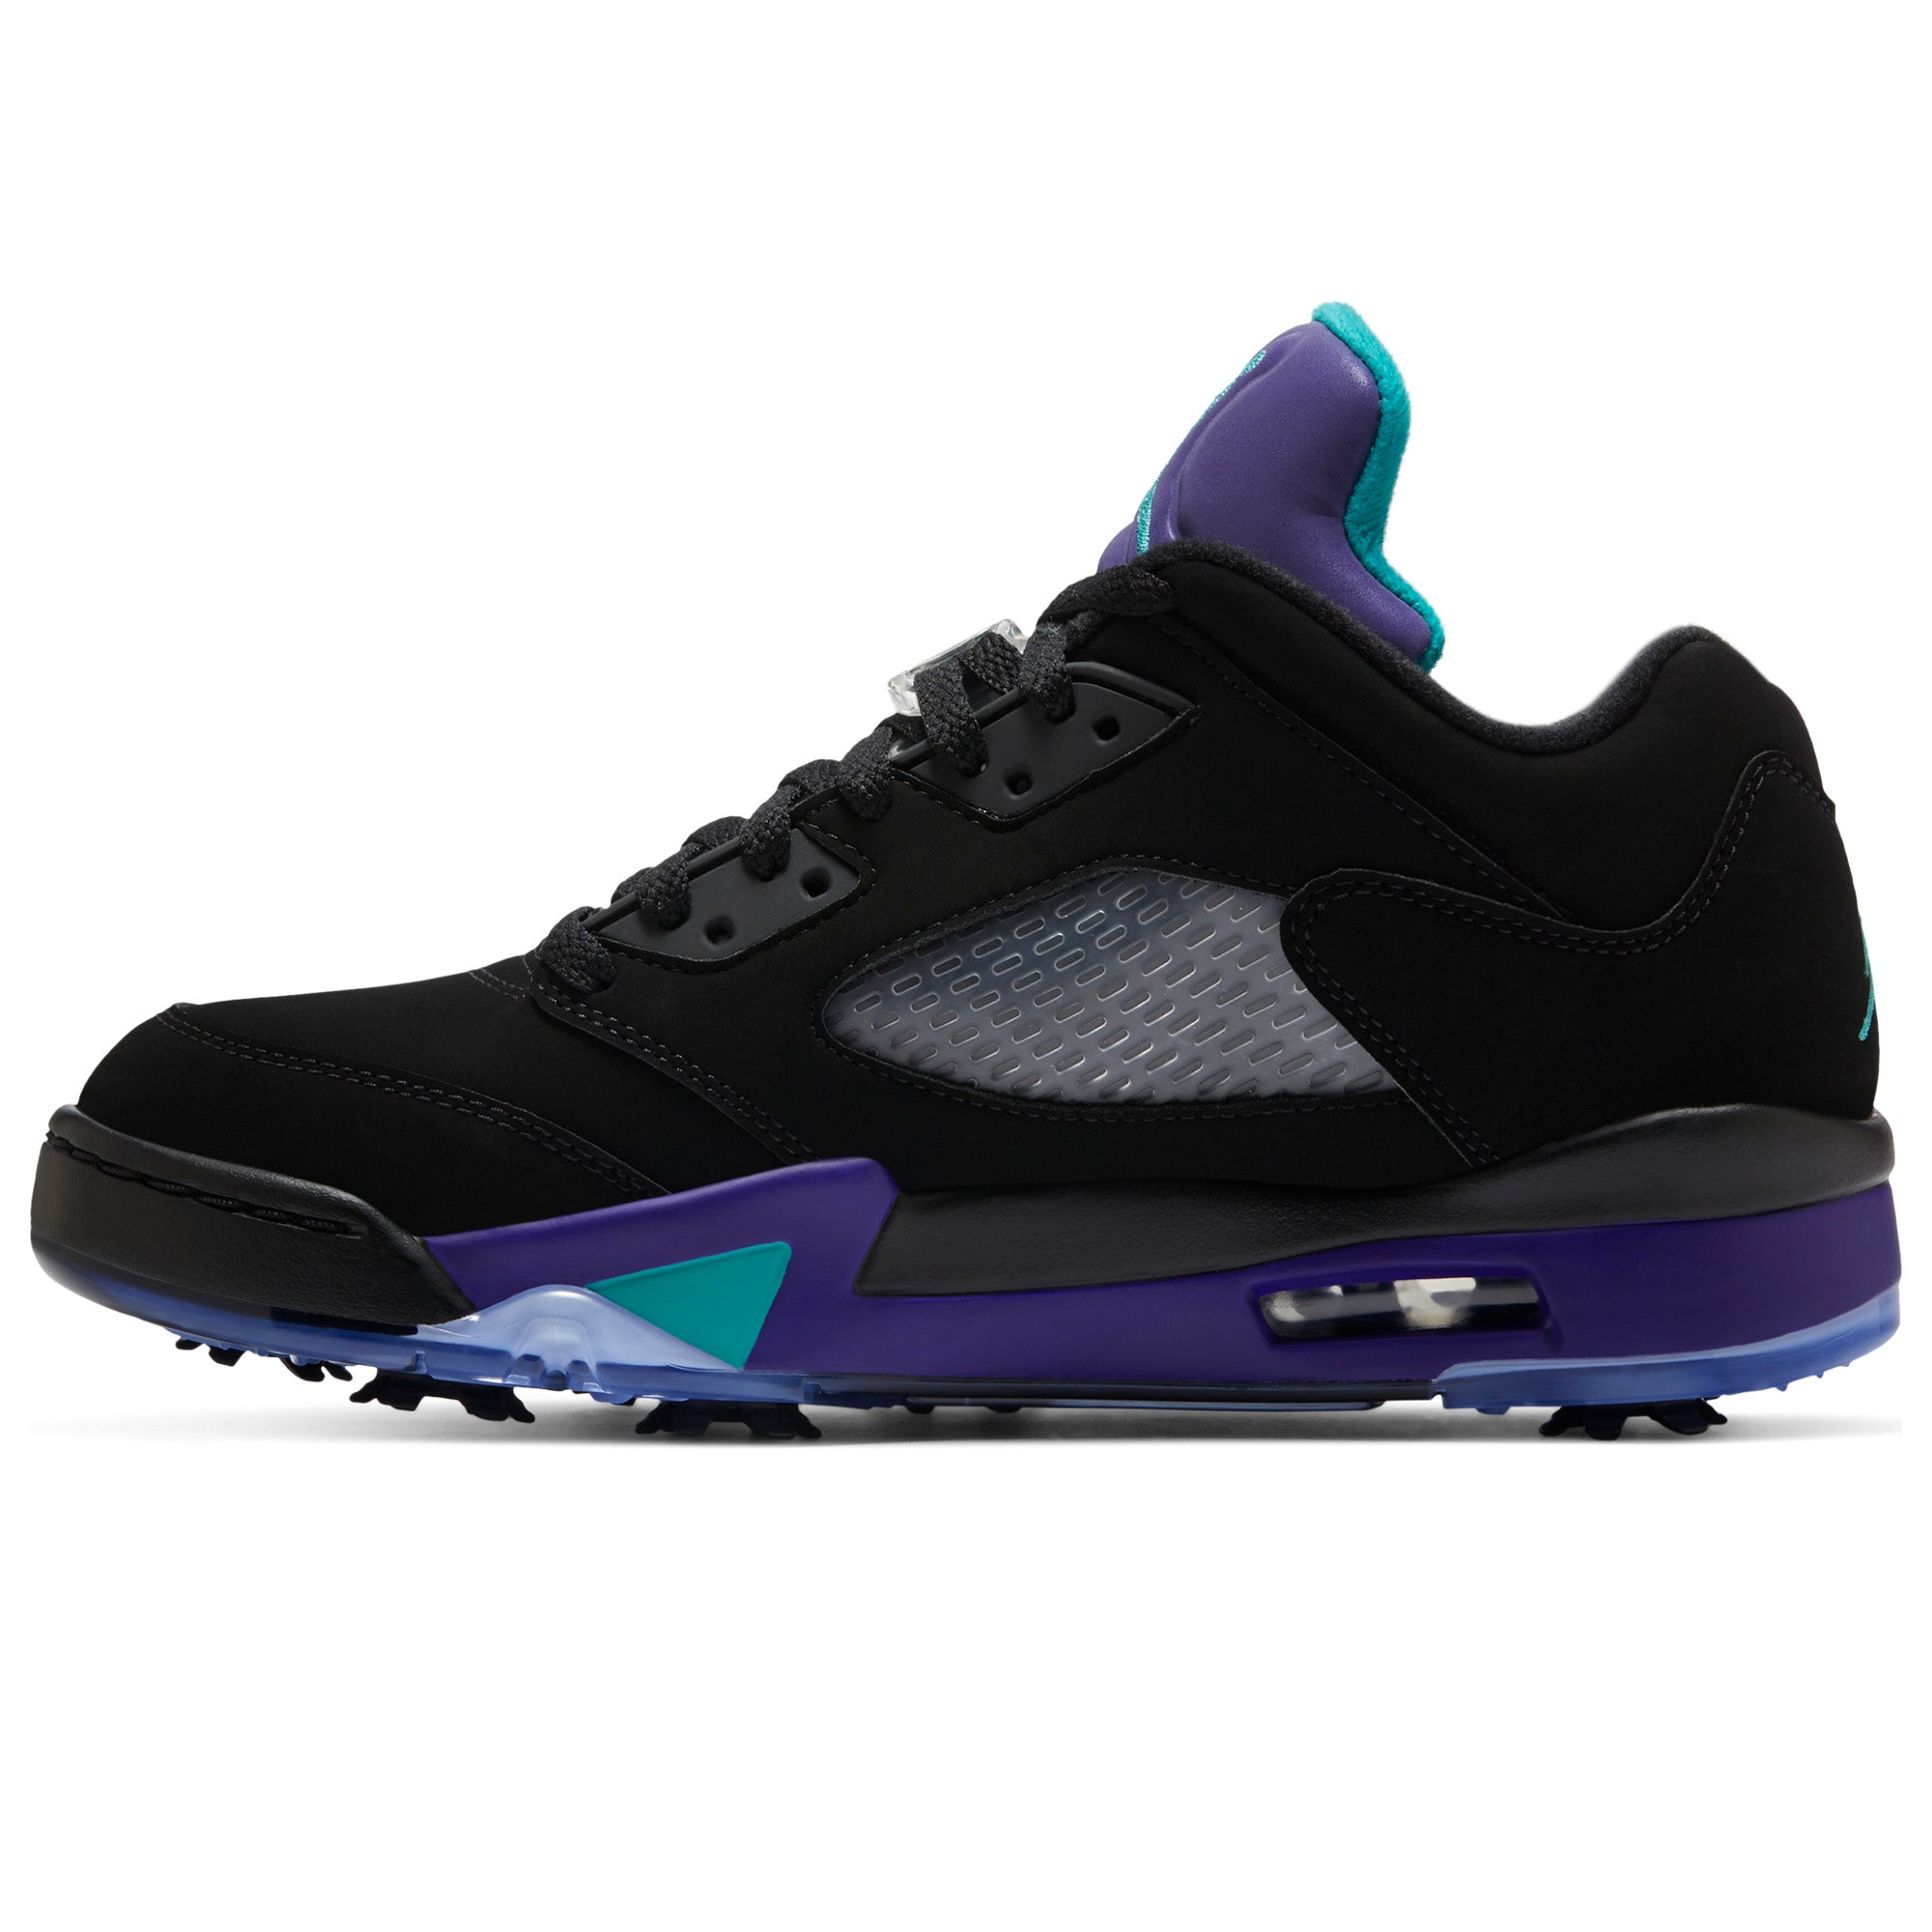 Nike Air Jordan V Low Golf Shoes